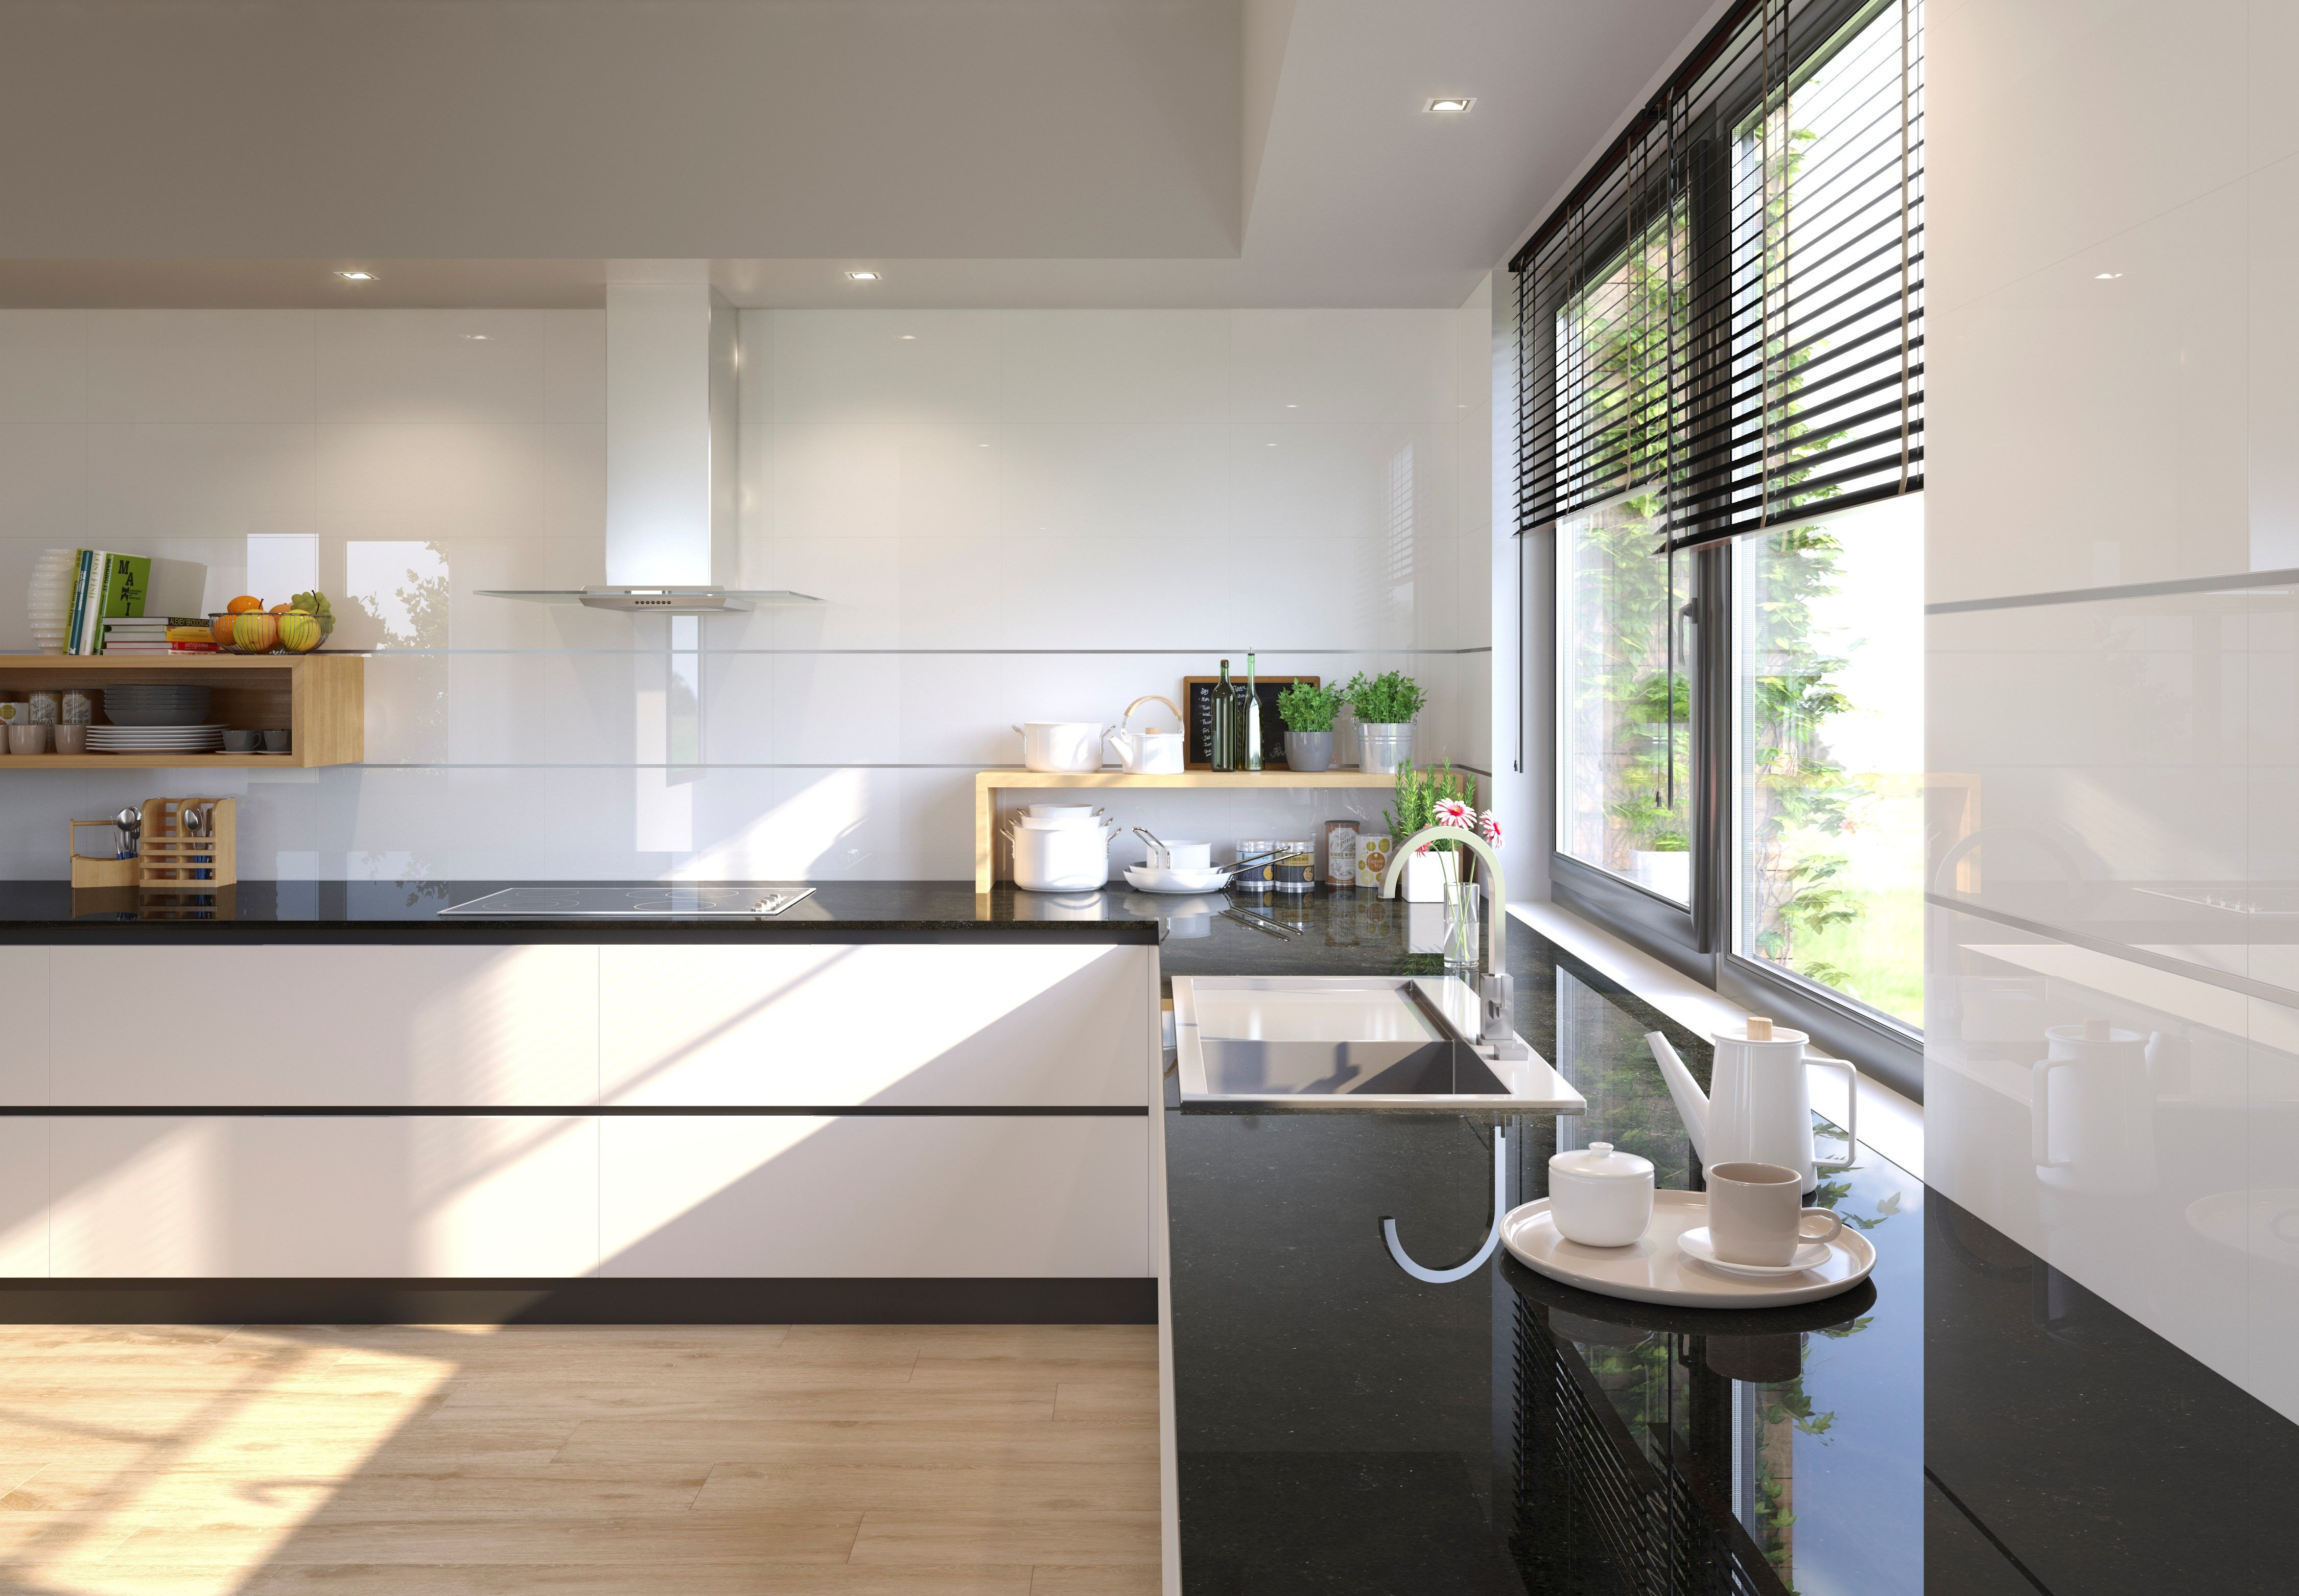 high gloss white wall tiles from minoli baikal blanco share the reflective aesthetic as their on kitchen interior tiles id=79448